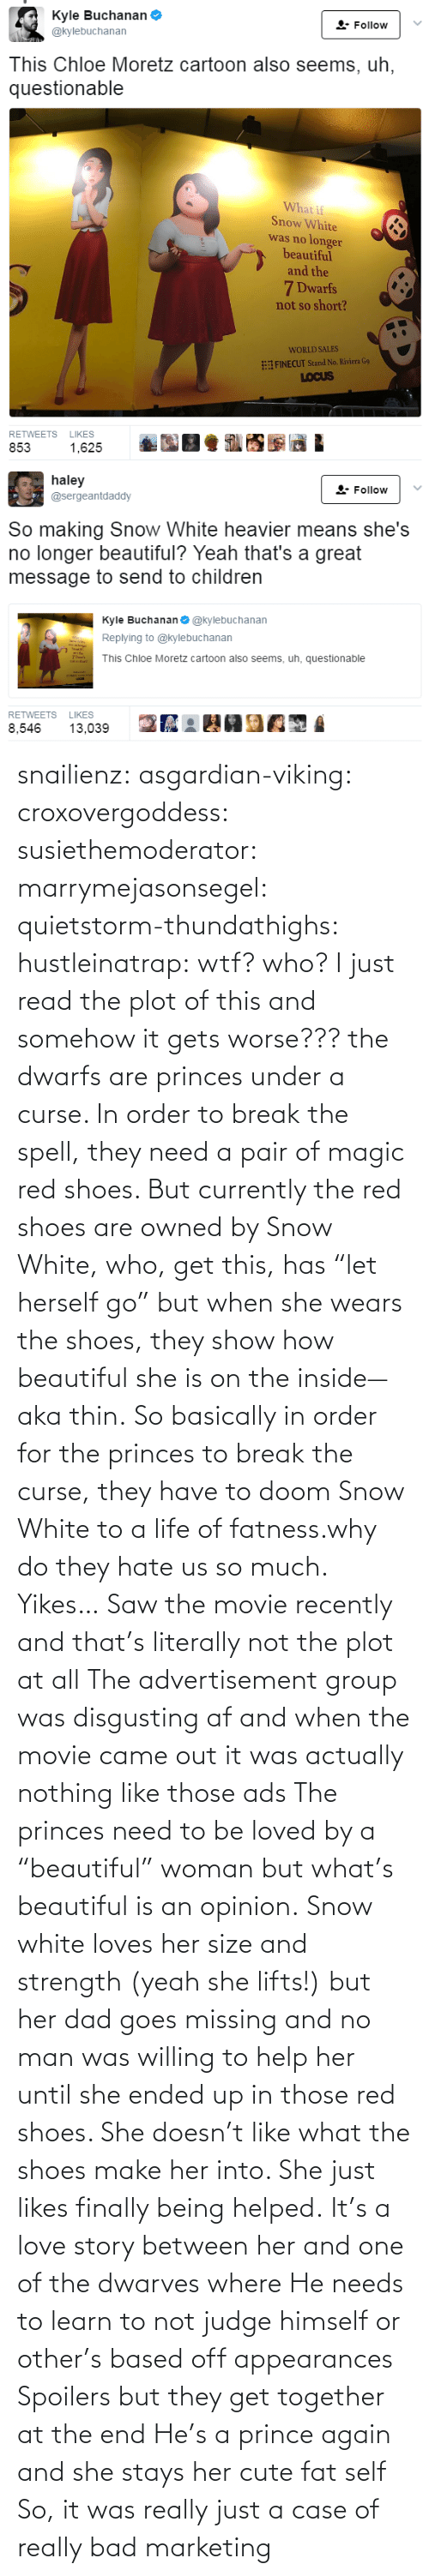 "loves: snailienz: asgardian-viking:  croxovergoddess:  susiethemoderator:  marrymejasonsegel:   quietstorm-thundathighs:  hustleinatrap: wtf?  who?   I just read the plot of this and somehow it gets worse??? the dwarfs are princes under a curse. In order to break the spell, they need a pair of magic red shoes. But currently the red shoes are owned by Snow White, who, get this, has ""let herself go"" but when she wears the shoes, they show how beautiful she is on the inside—aka thin. So basically in order for the princes to break the curse, they have to doom Snow White to a life of fatness.why do they hate us so much.   Yikes…    Saw the movie recently and that's literally not the plot at all The advertisement group was disgusting af and when the movie came out it was actually nothing like those ads The princes need to be loved by a ""beautiful"" woman but what's beautiful is an opinion. Snow white loves her size and strength (yeah she lifts!) but her dad goes missing and no man was willing to help her until she ended up in those red shoes. She doesn't like what the shoes make her into. She just likes finally being helped. It's a love story between her and one of the dwarves where He needs to learn to not judge himself or other's based off appearances  Spoilers but they get together at the end He's a prince again and she stays her cute fat self  So, it was really just a case of really bad marketing"